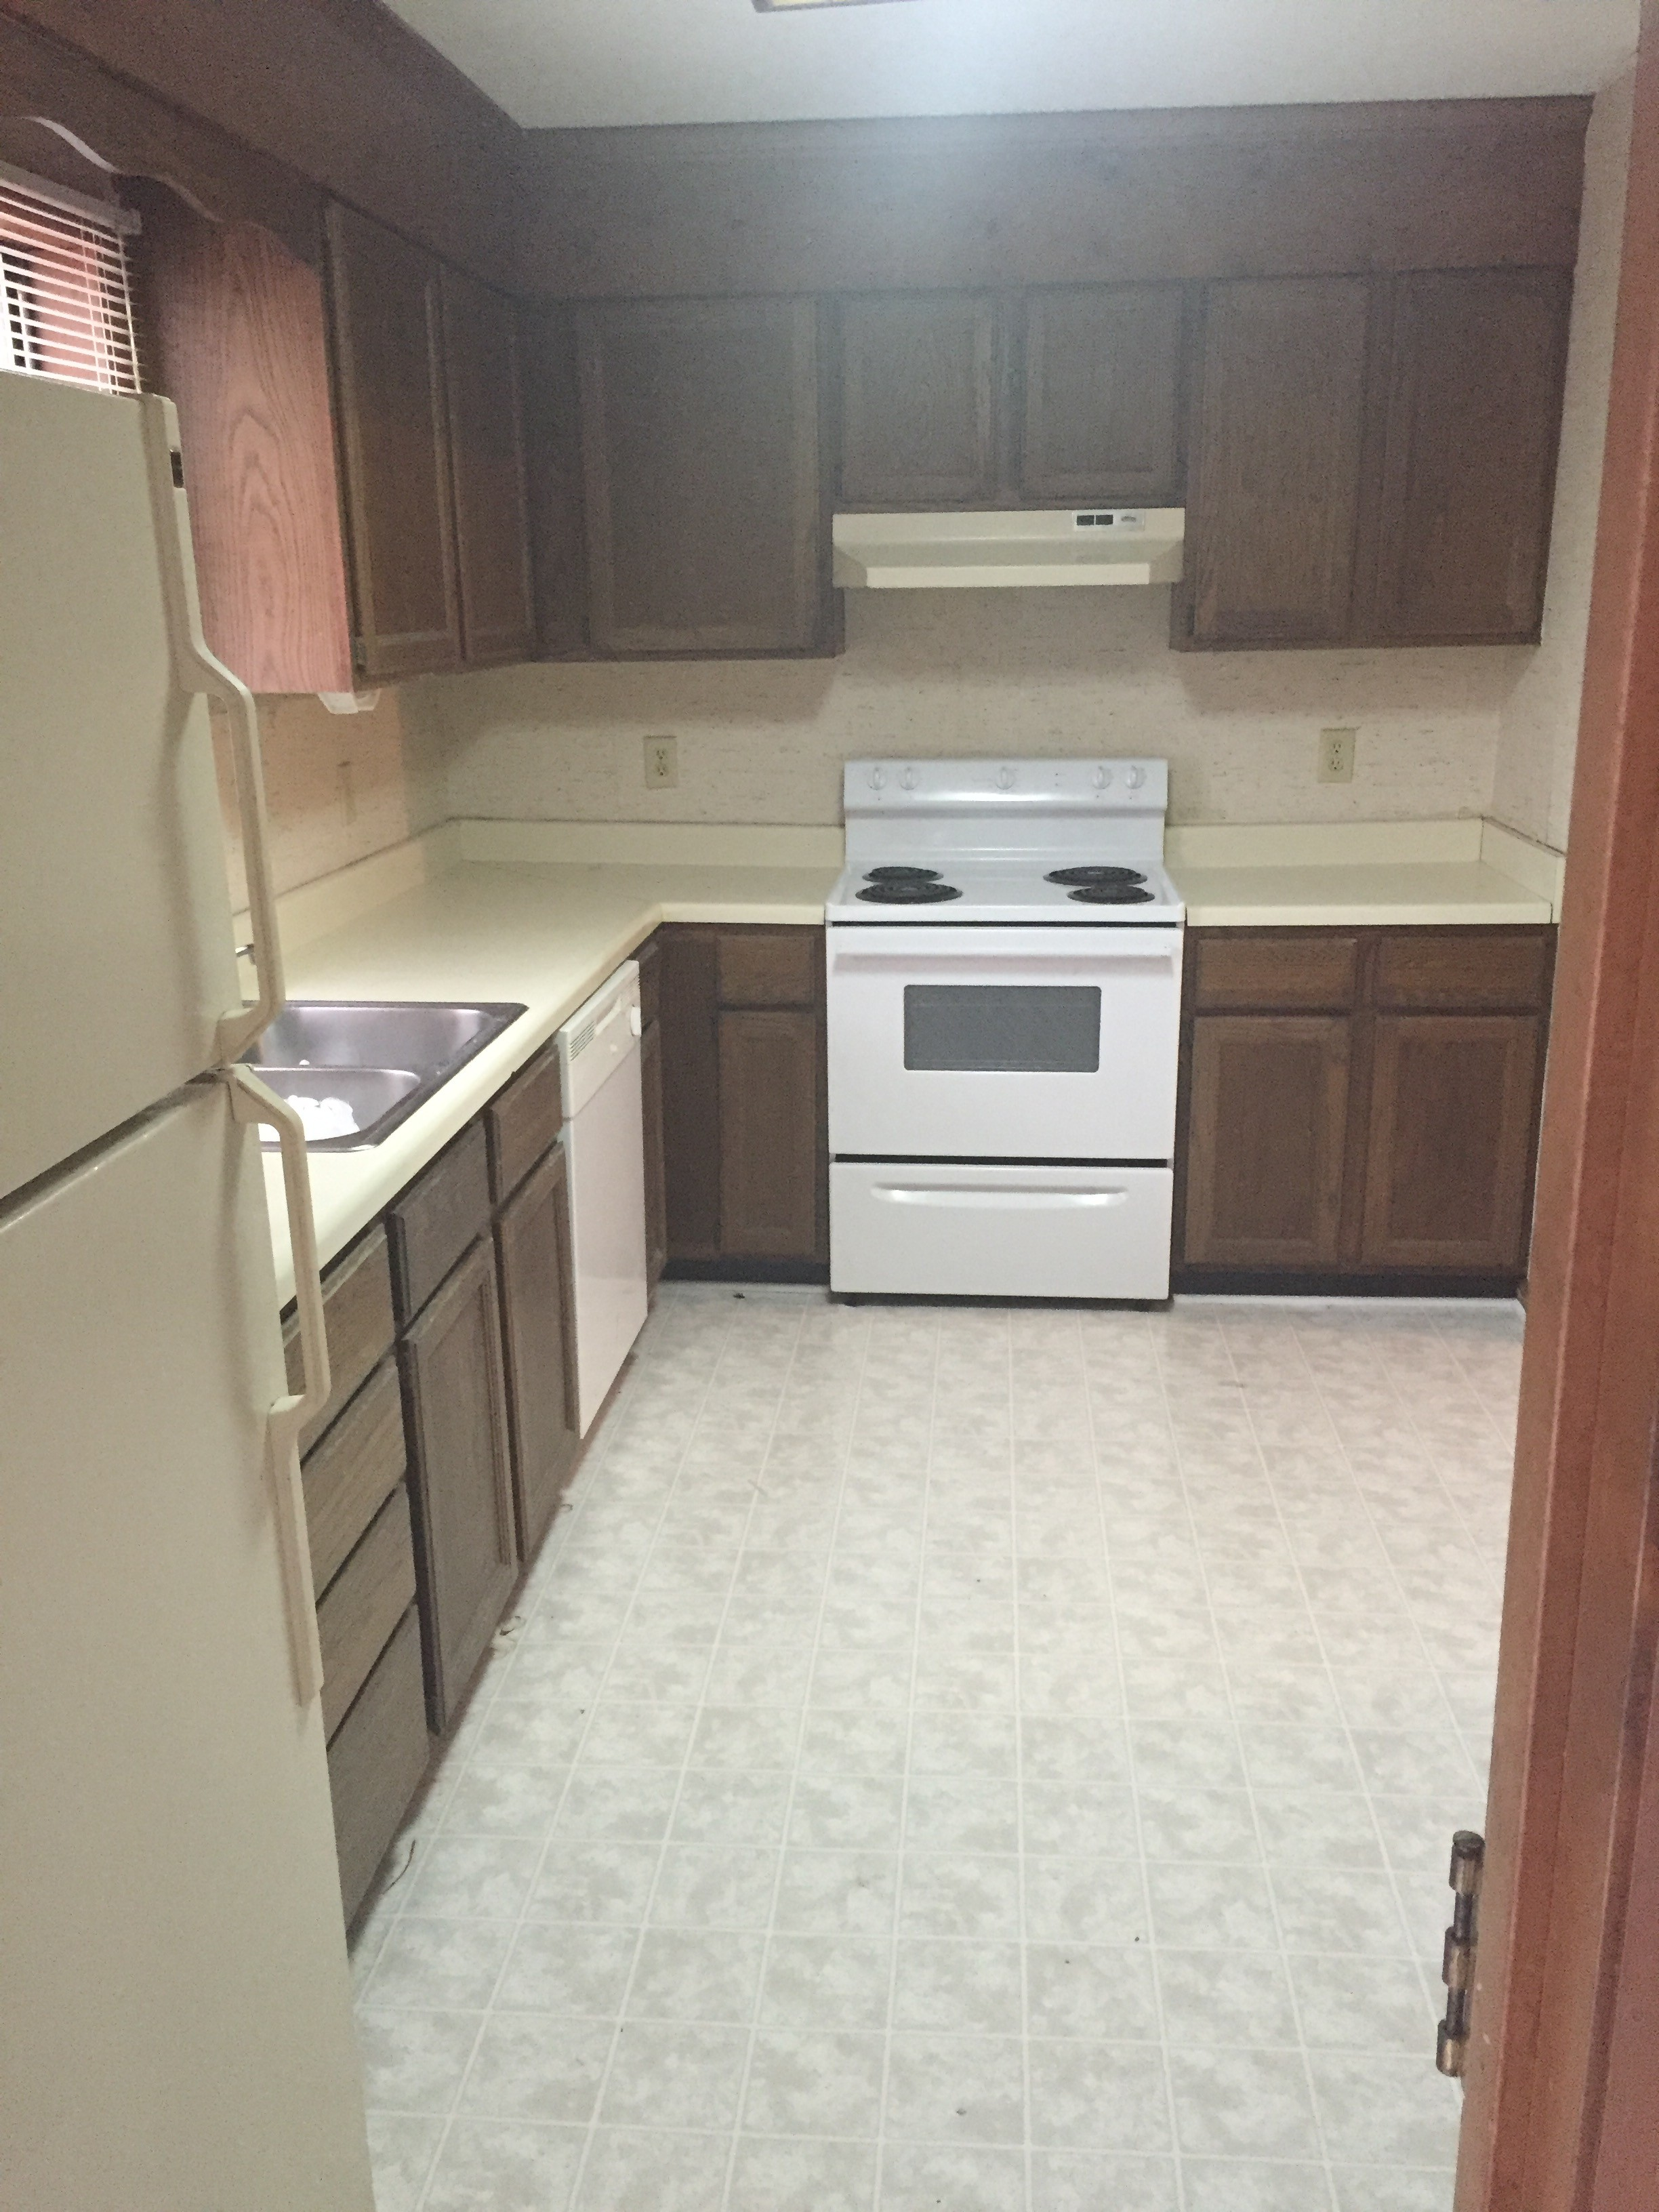 Large kitchen wit lots of counter space and storage